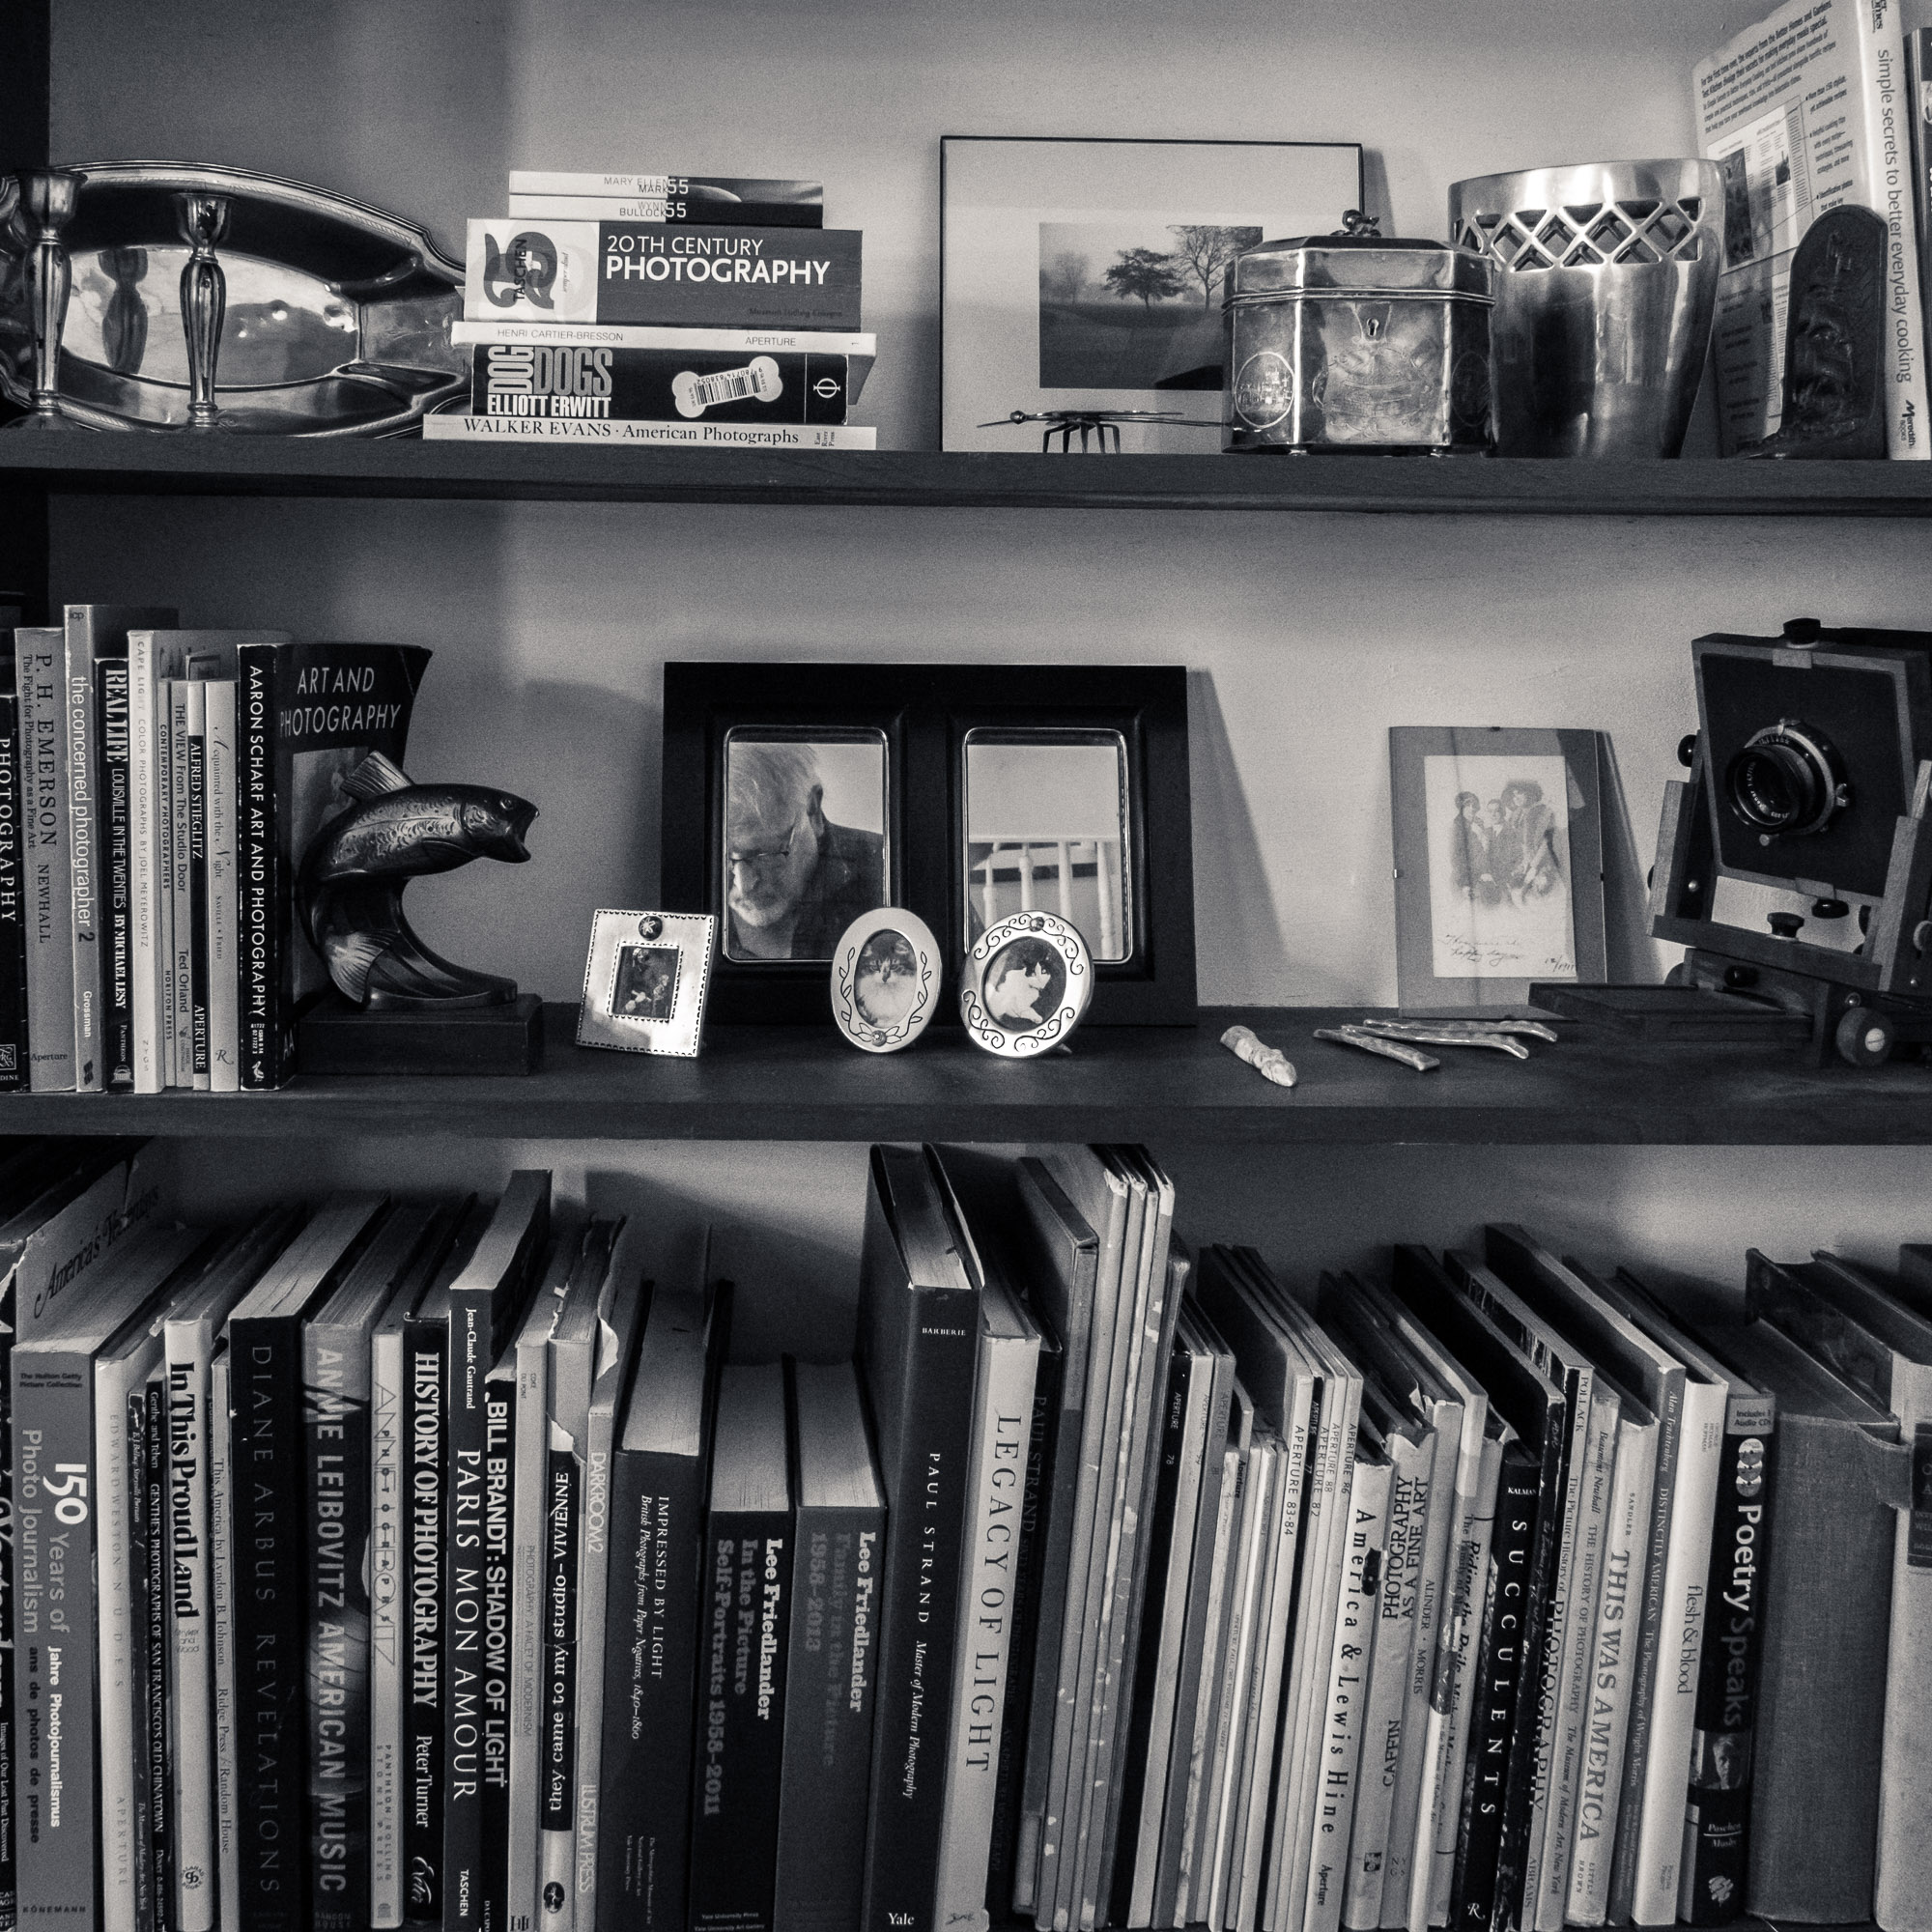 Nick Van Zanten 's photobook library in black-and-white